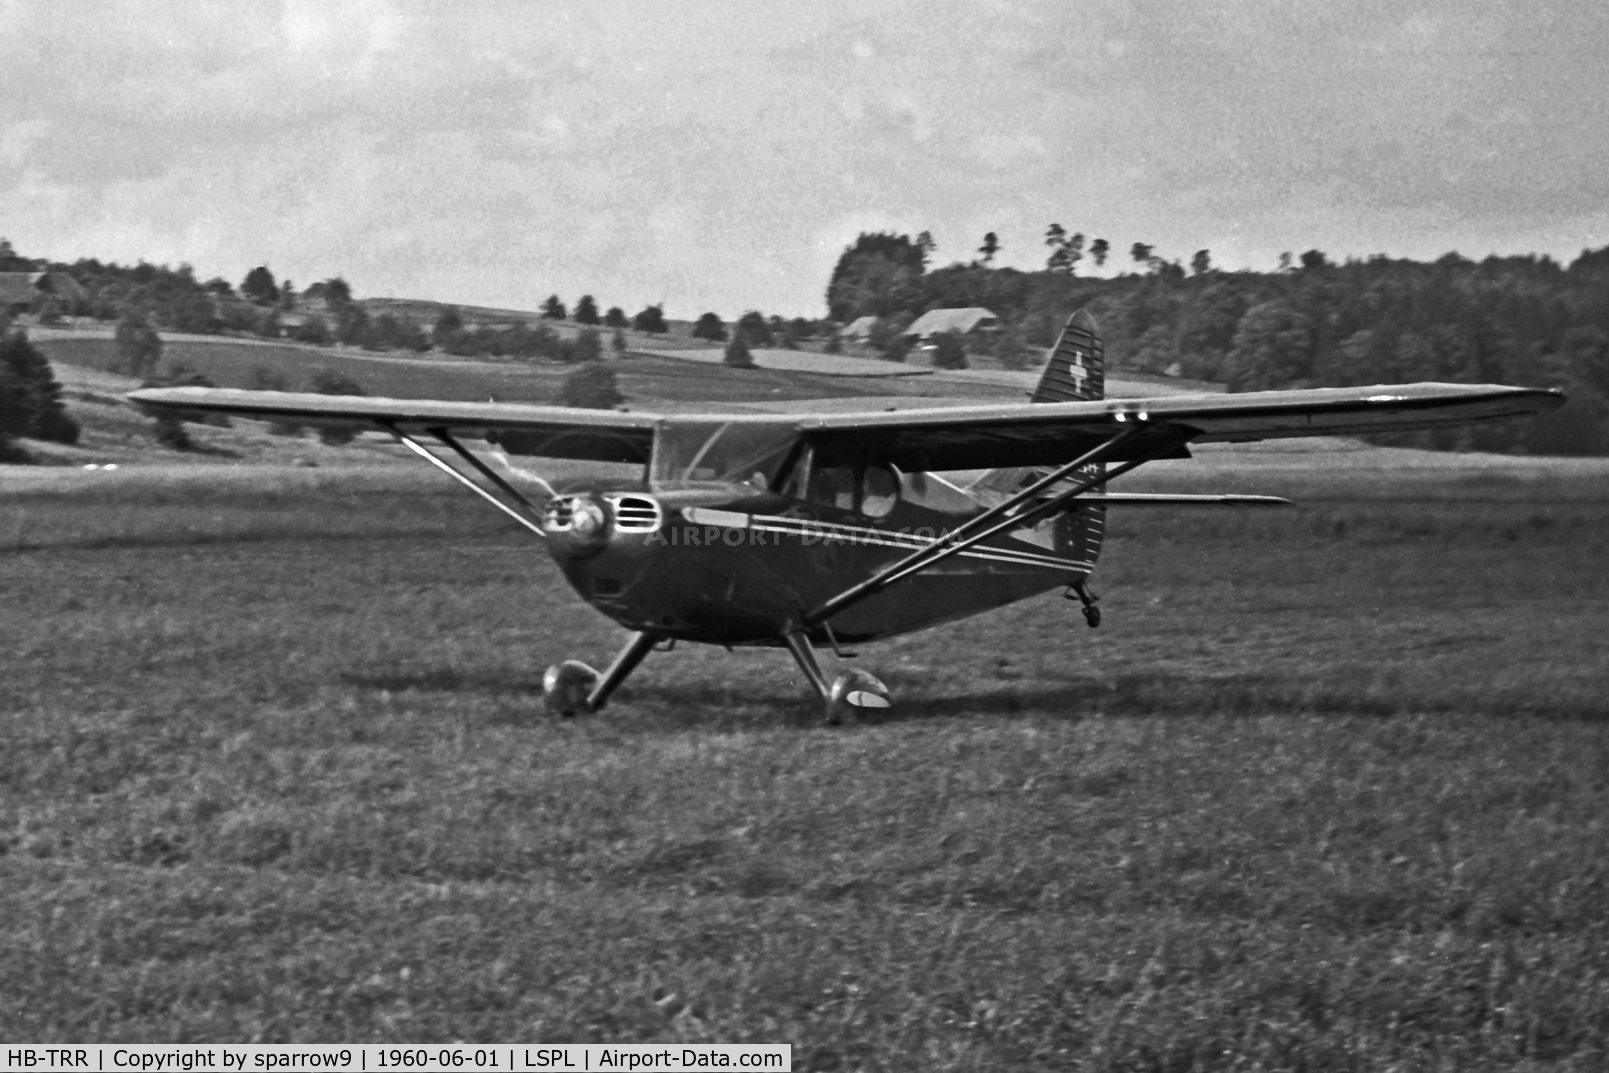 HB-TRR, 1947 Stinson 108-3 Voyager Voyager C/N 108-3920, At Langenthal-Bleienbach airfield in the sixties.